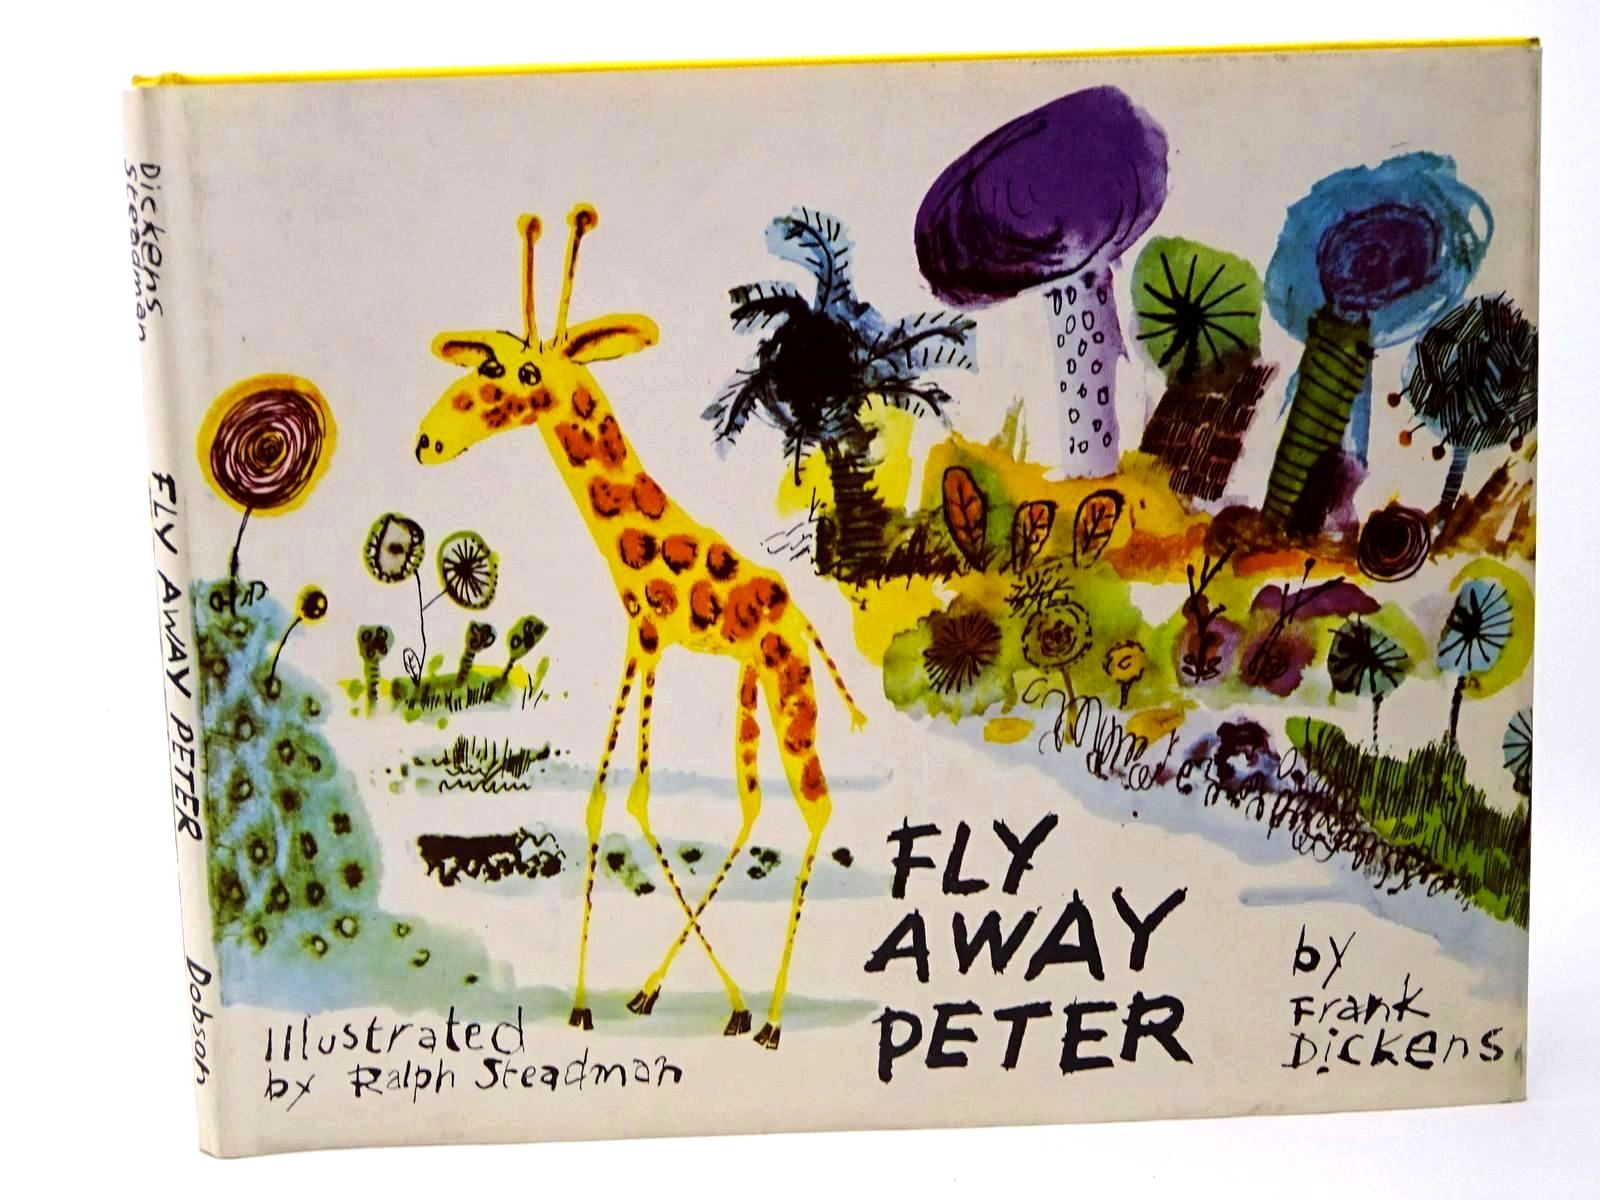 Photo of FLY AWAY PETER written by Dickens, Frank illustrated by Steadman, Ralph published by Dennis Dobson (STOCK CODE: 1317704)  for sale by Stella & Rose's Books